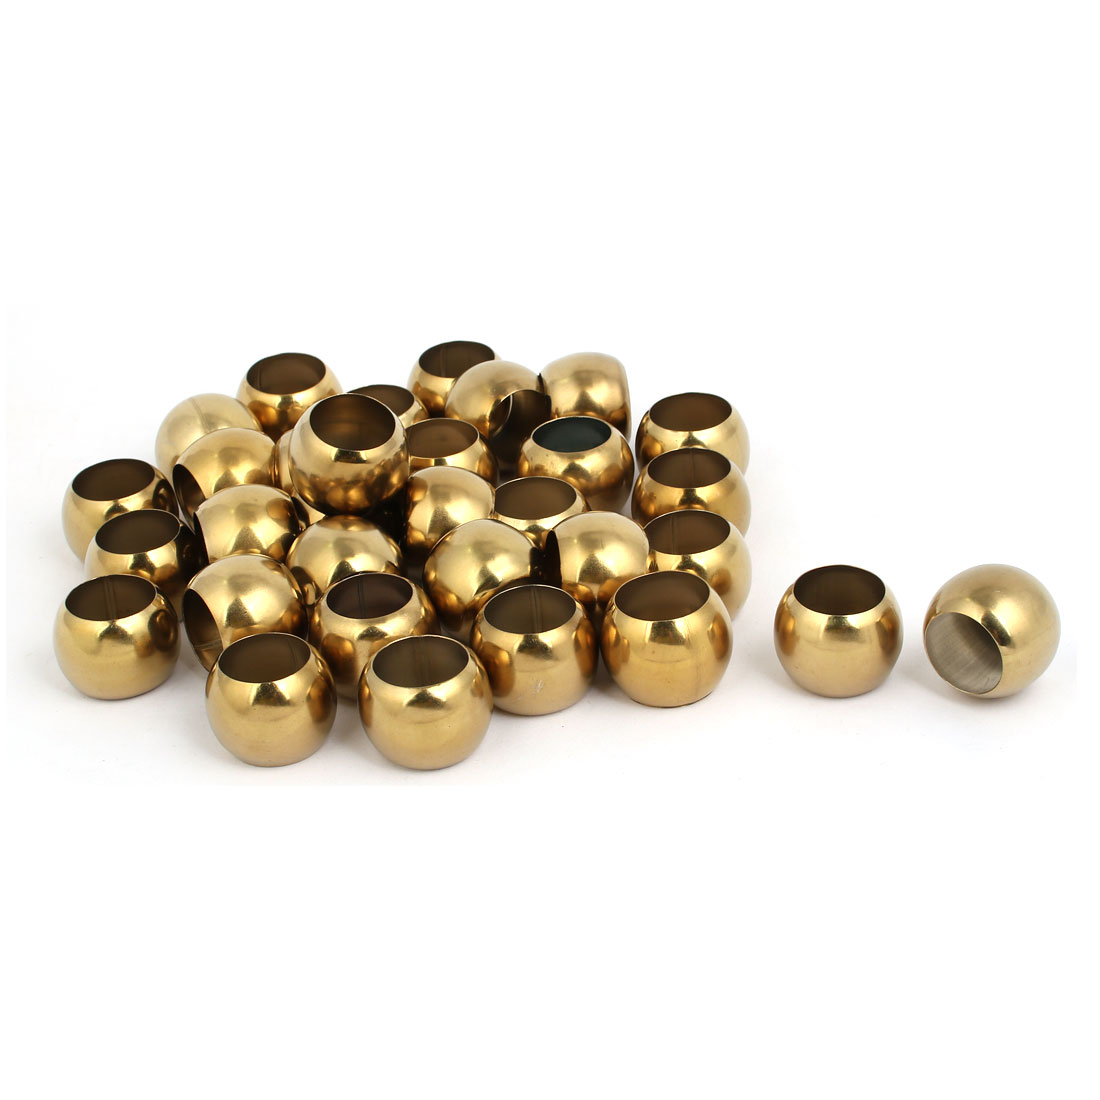 32mmx19.5mm 201 Stainless Steel Hollow Ball Gold Tone 32pcs for Handrail Stair